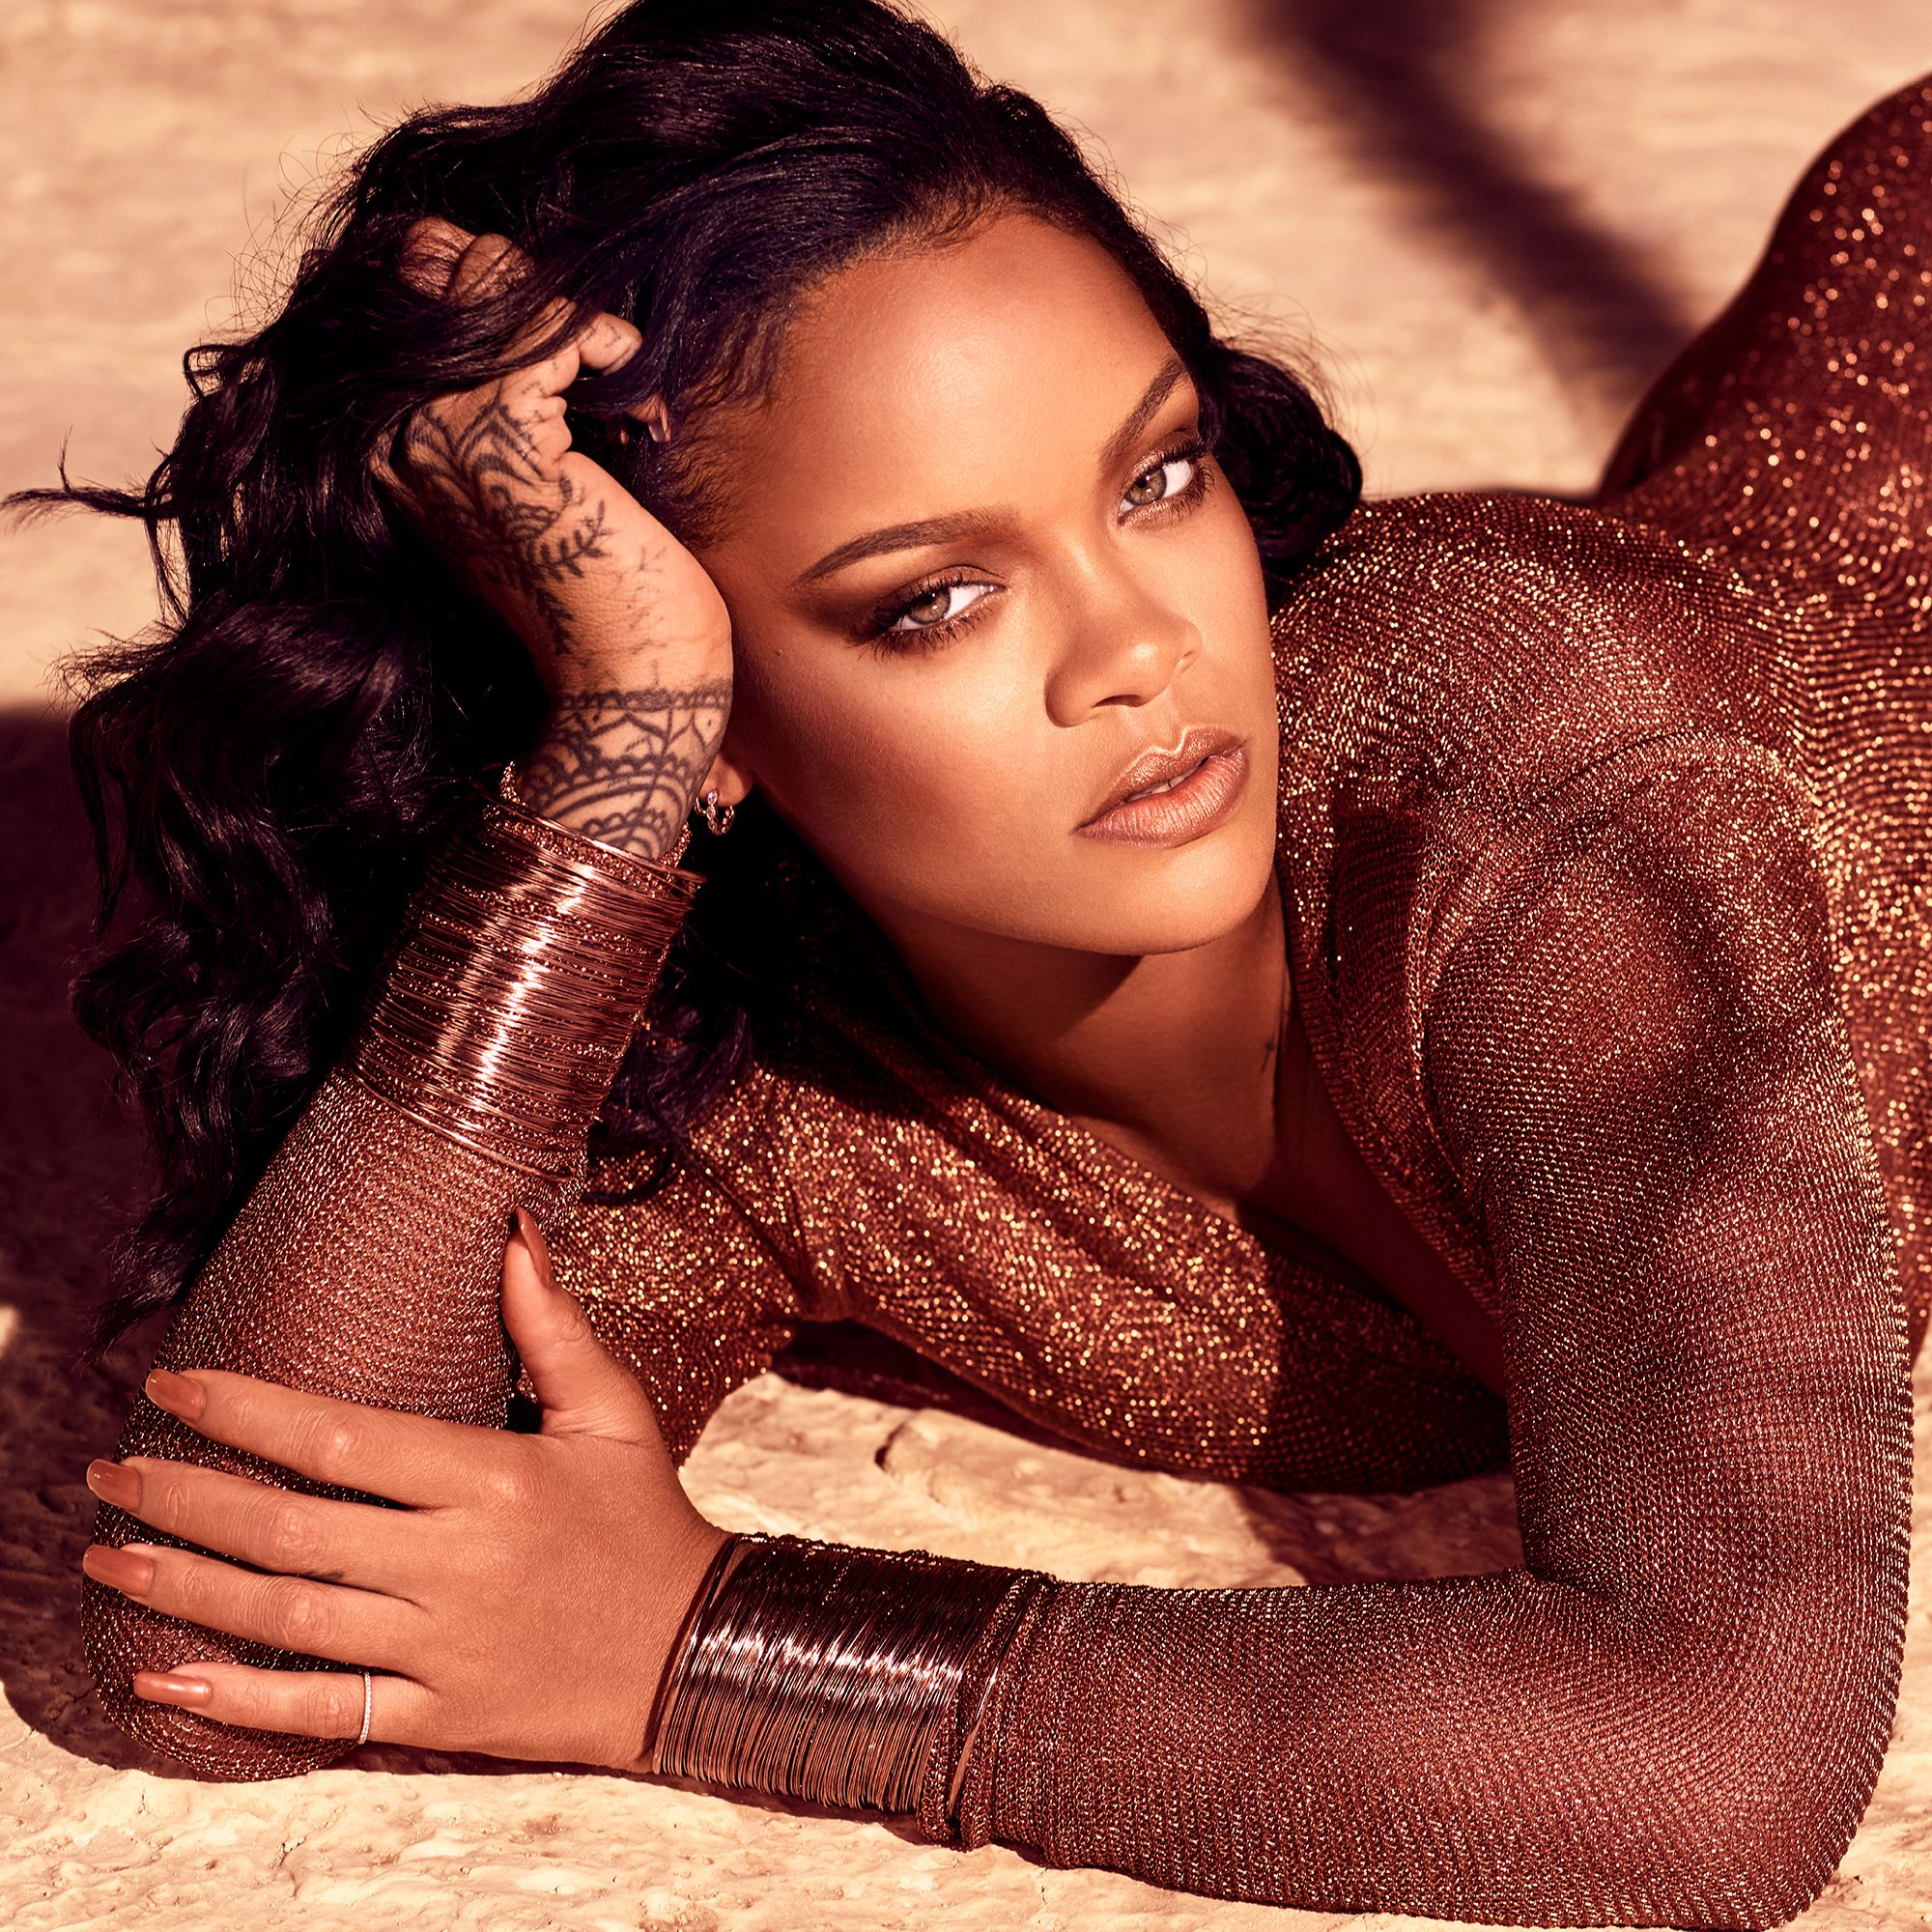 Rihanna Is Expanding Shade Diversity to Fenty Beauty's First-Ever Bronzer